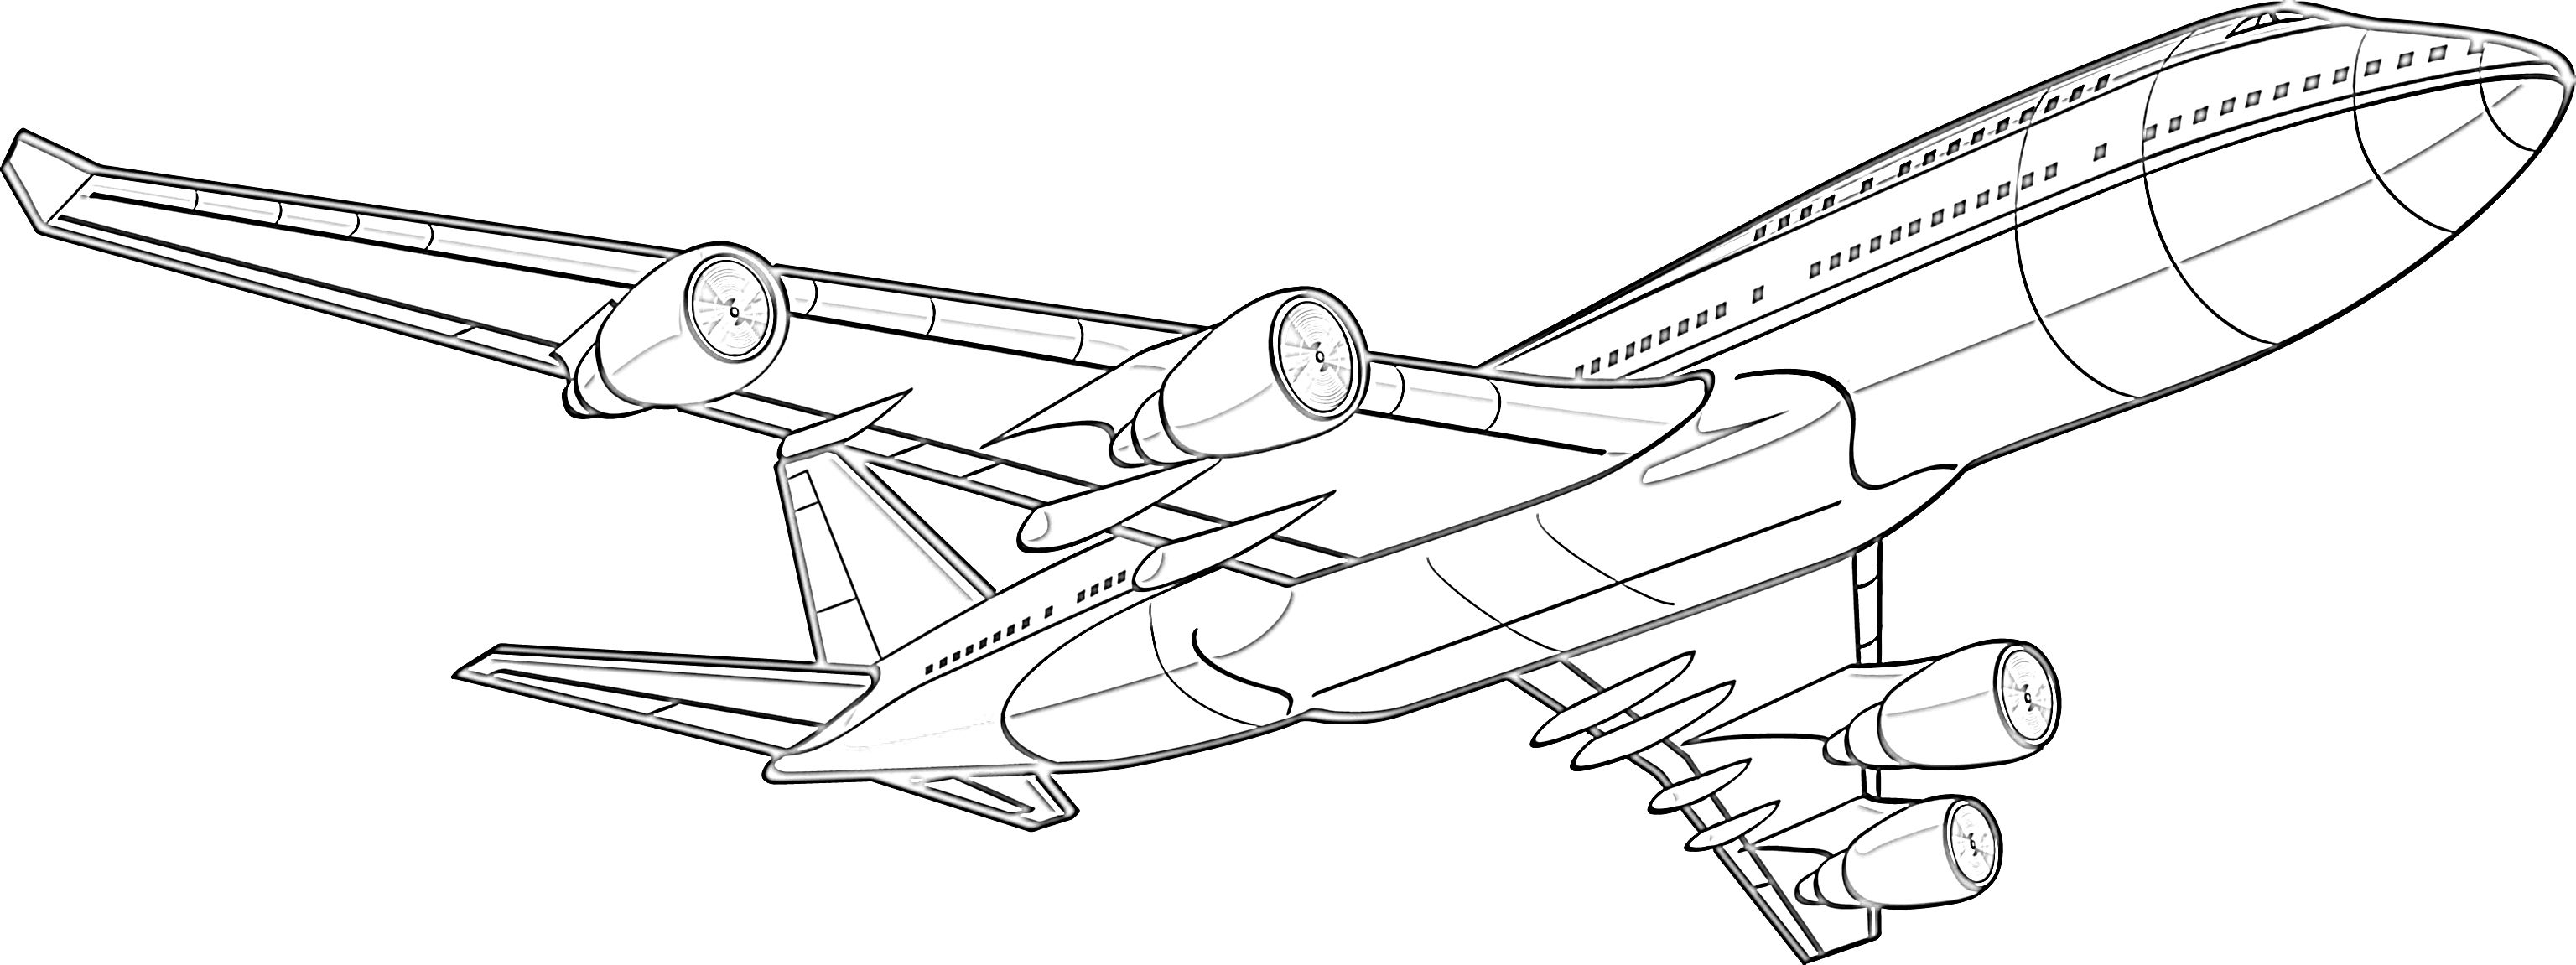 coloring page airplane airplane coloring pages for kids at getdrawings free coloring airplane page